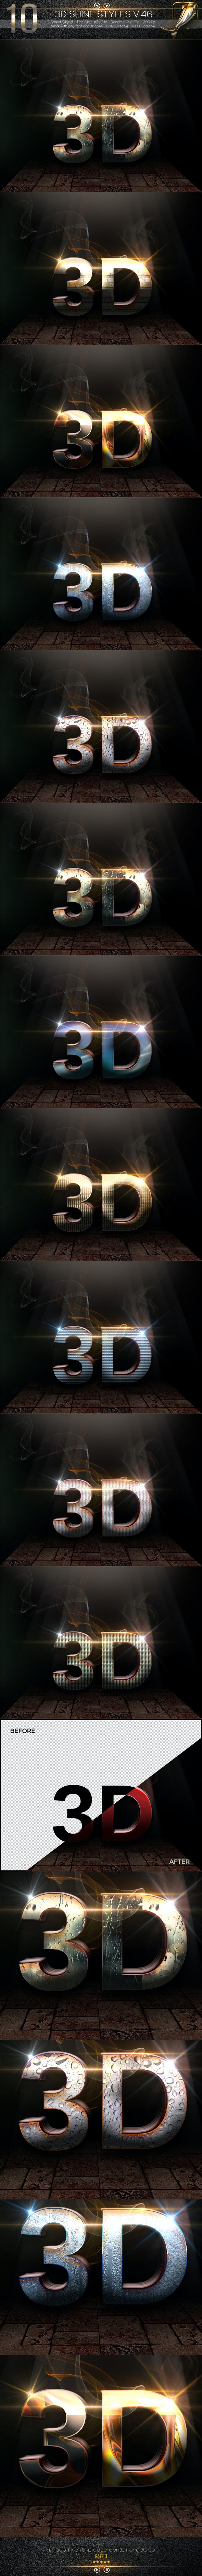 10 3D Text Styles V.46 - Text Effects Styles